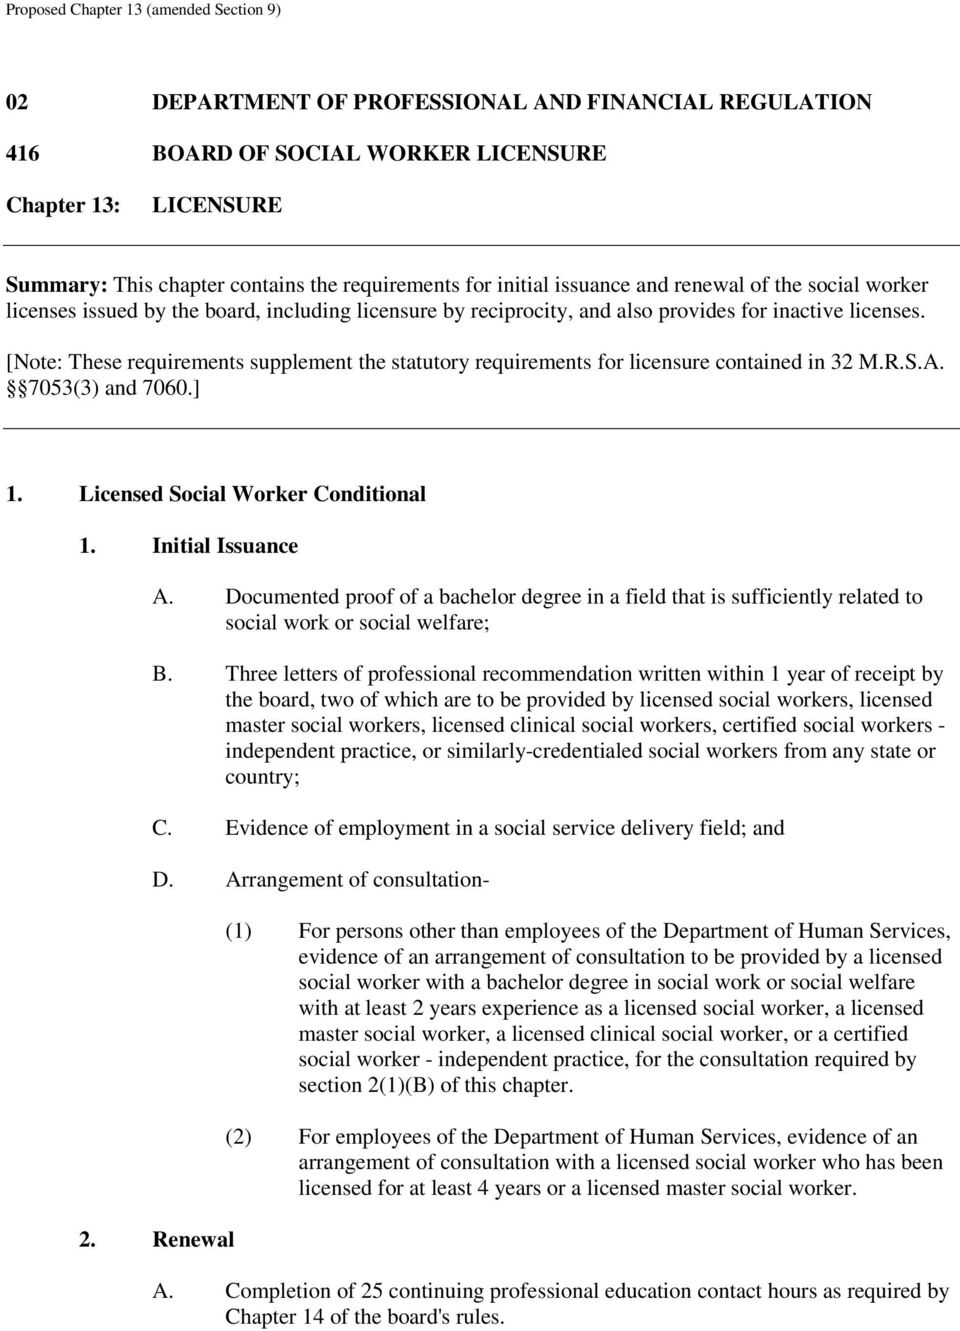 [Note: These requirements supplement the statutory requirements for licensure contained in 32 M.R.S.A. 7053(3) and 7060.] 1. Licensed Social Worker Conditional 1. Initial Issuance A.